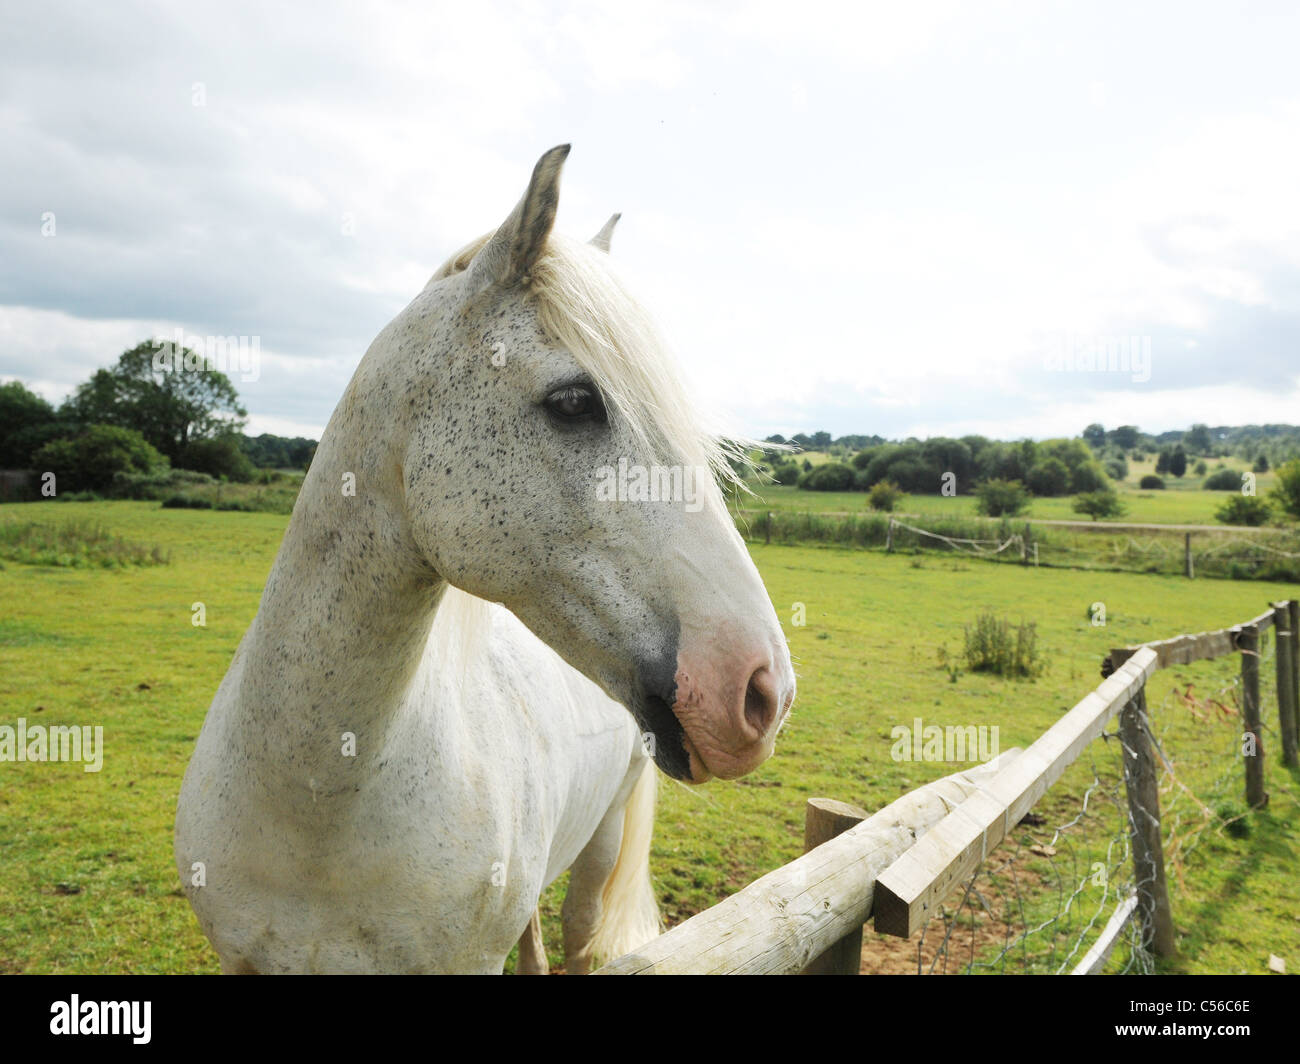 A beautiful white horse alone in a field. - Stock Image